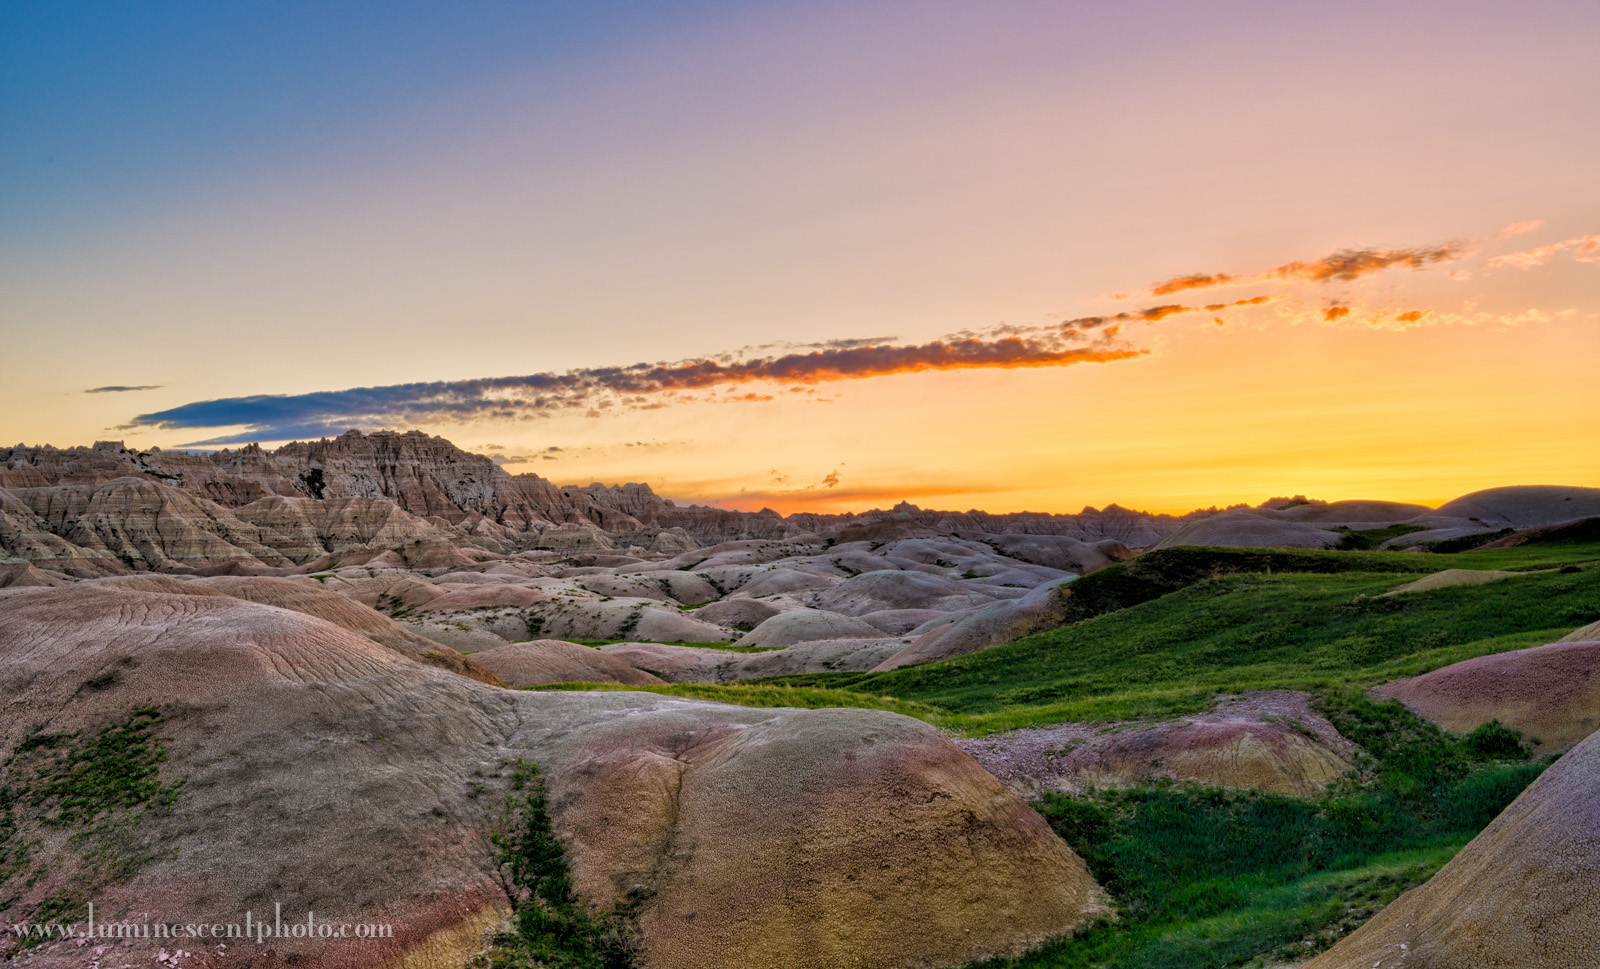 Sunrise at Conata Basin, Badlands National Park, SD.  HDR image captured with a Nikon D800e and processed with the Nik Collection.